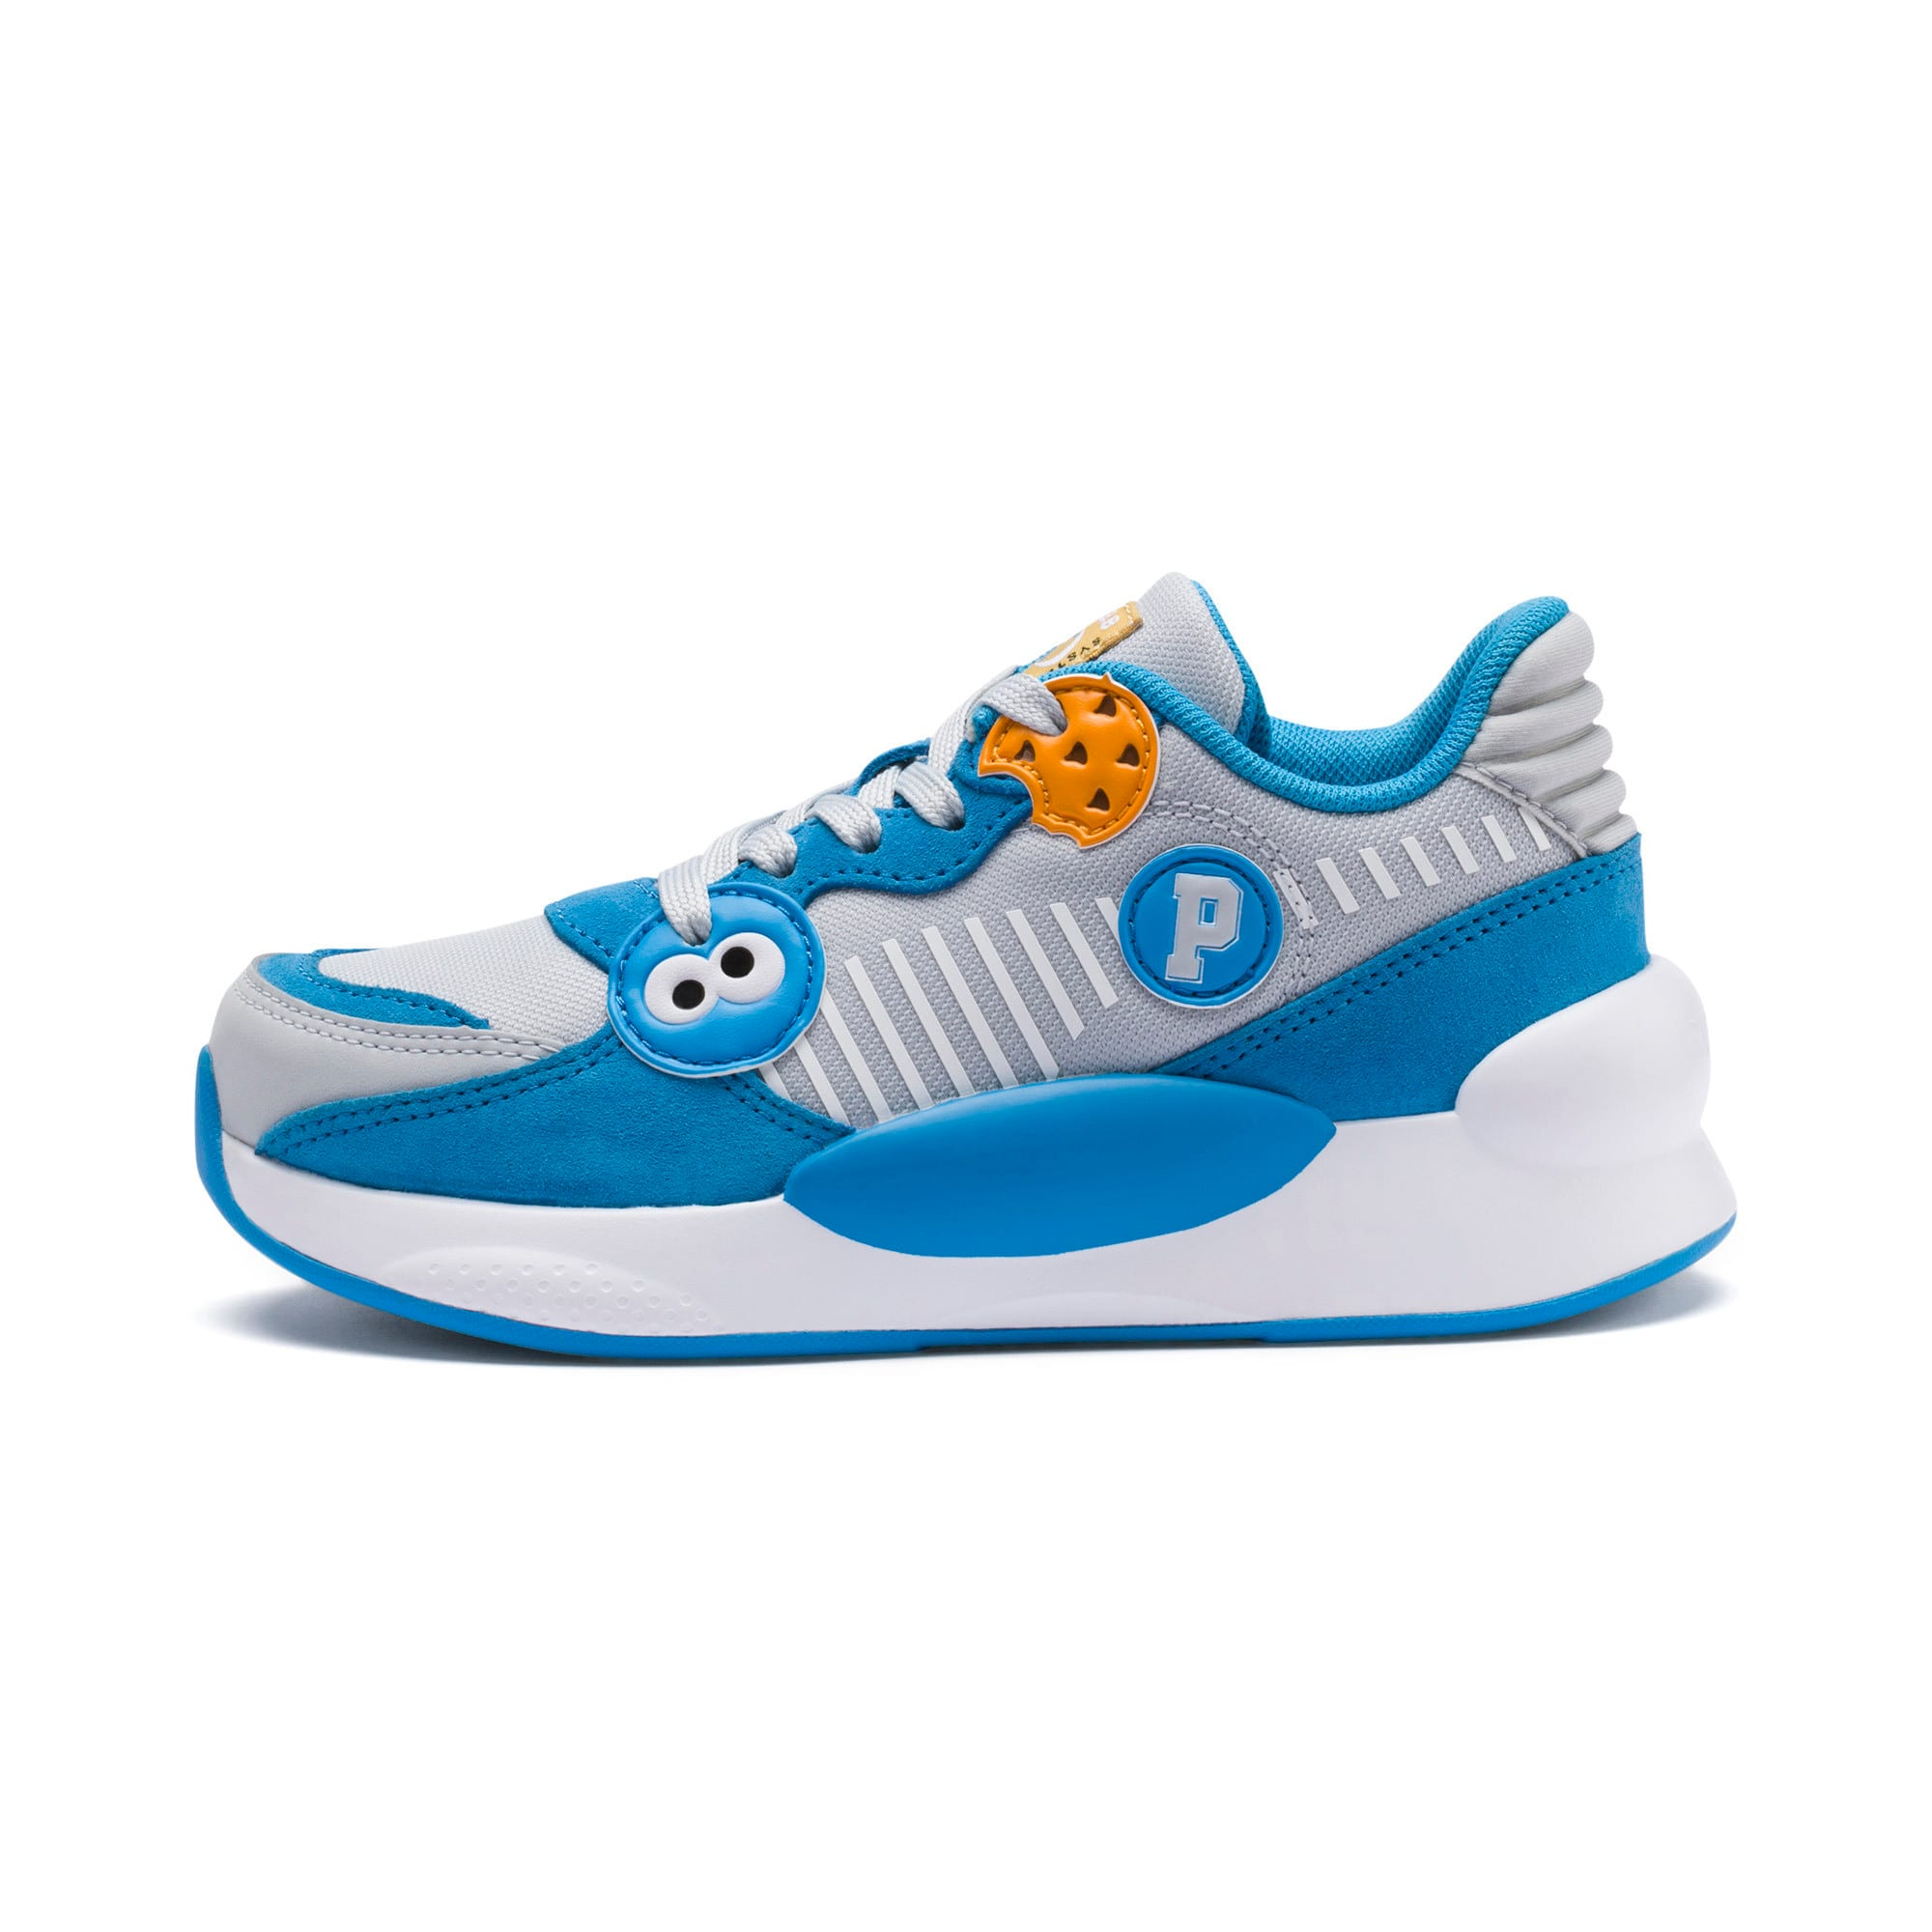 Thumbnail 1 of Sesame Street 50 RS 9.8 Kids' Trainers, Grey Dawn-Bleu Azur, medium-IND